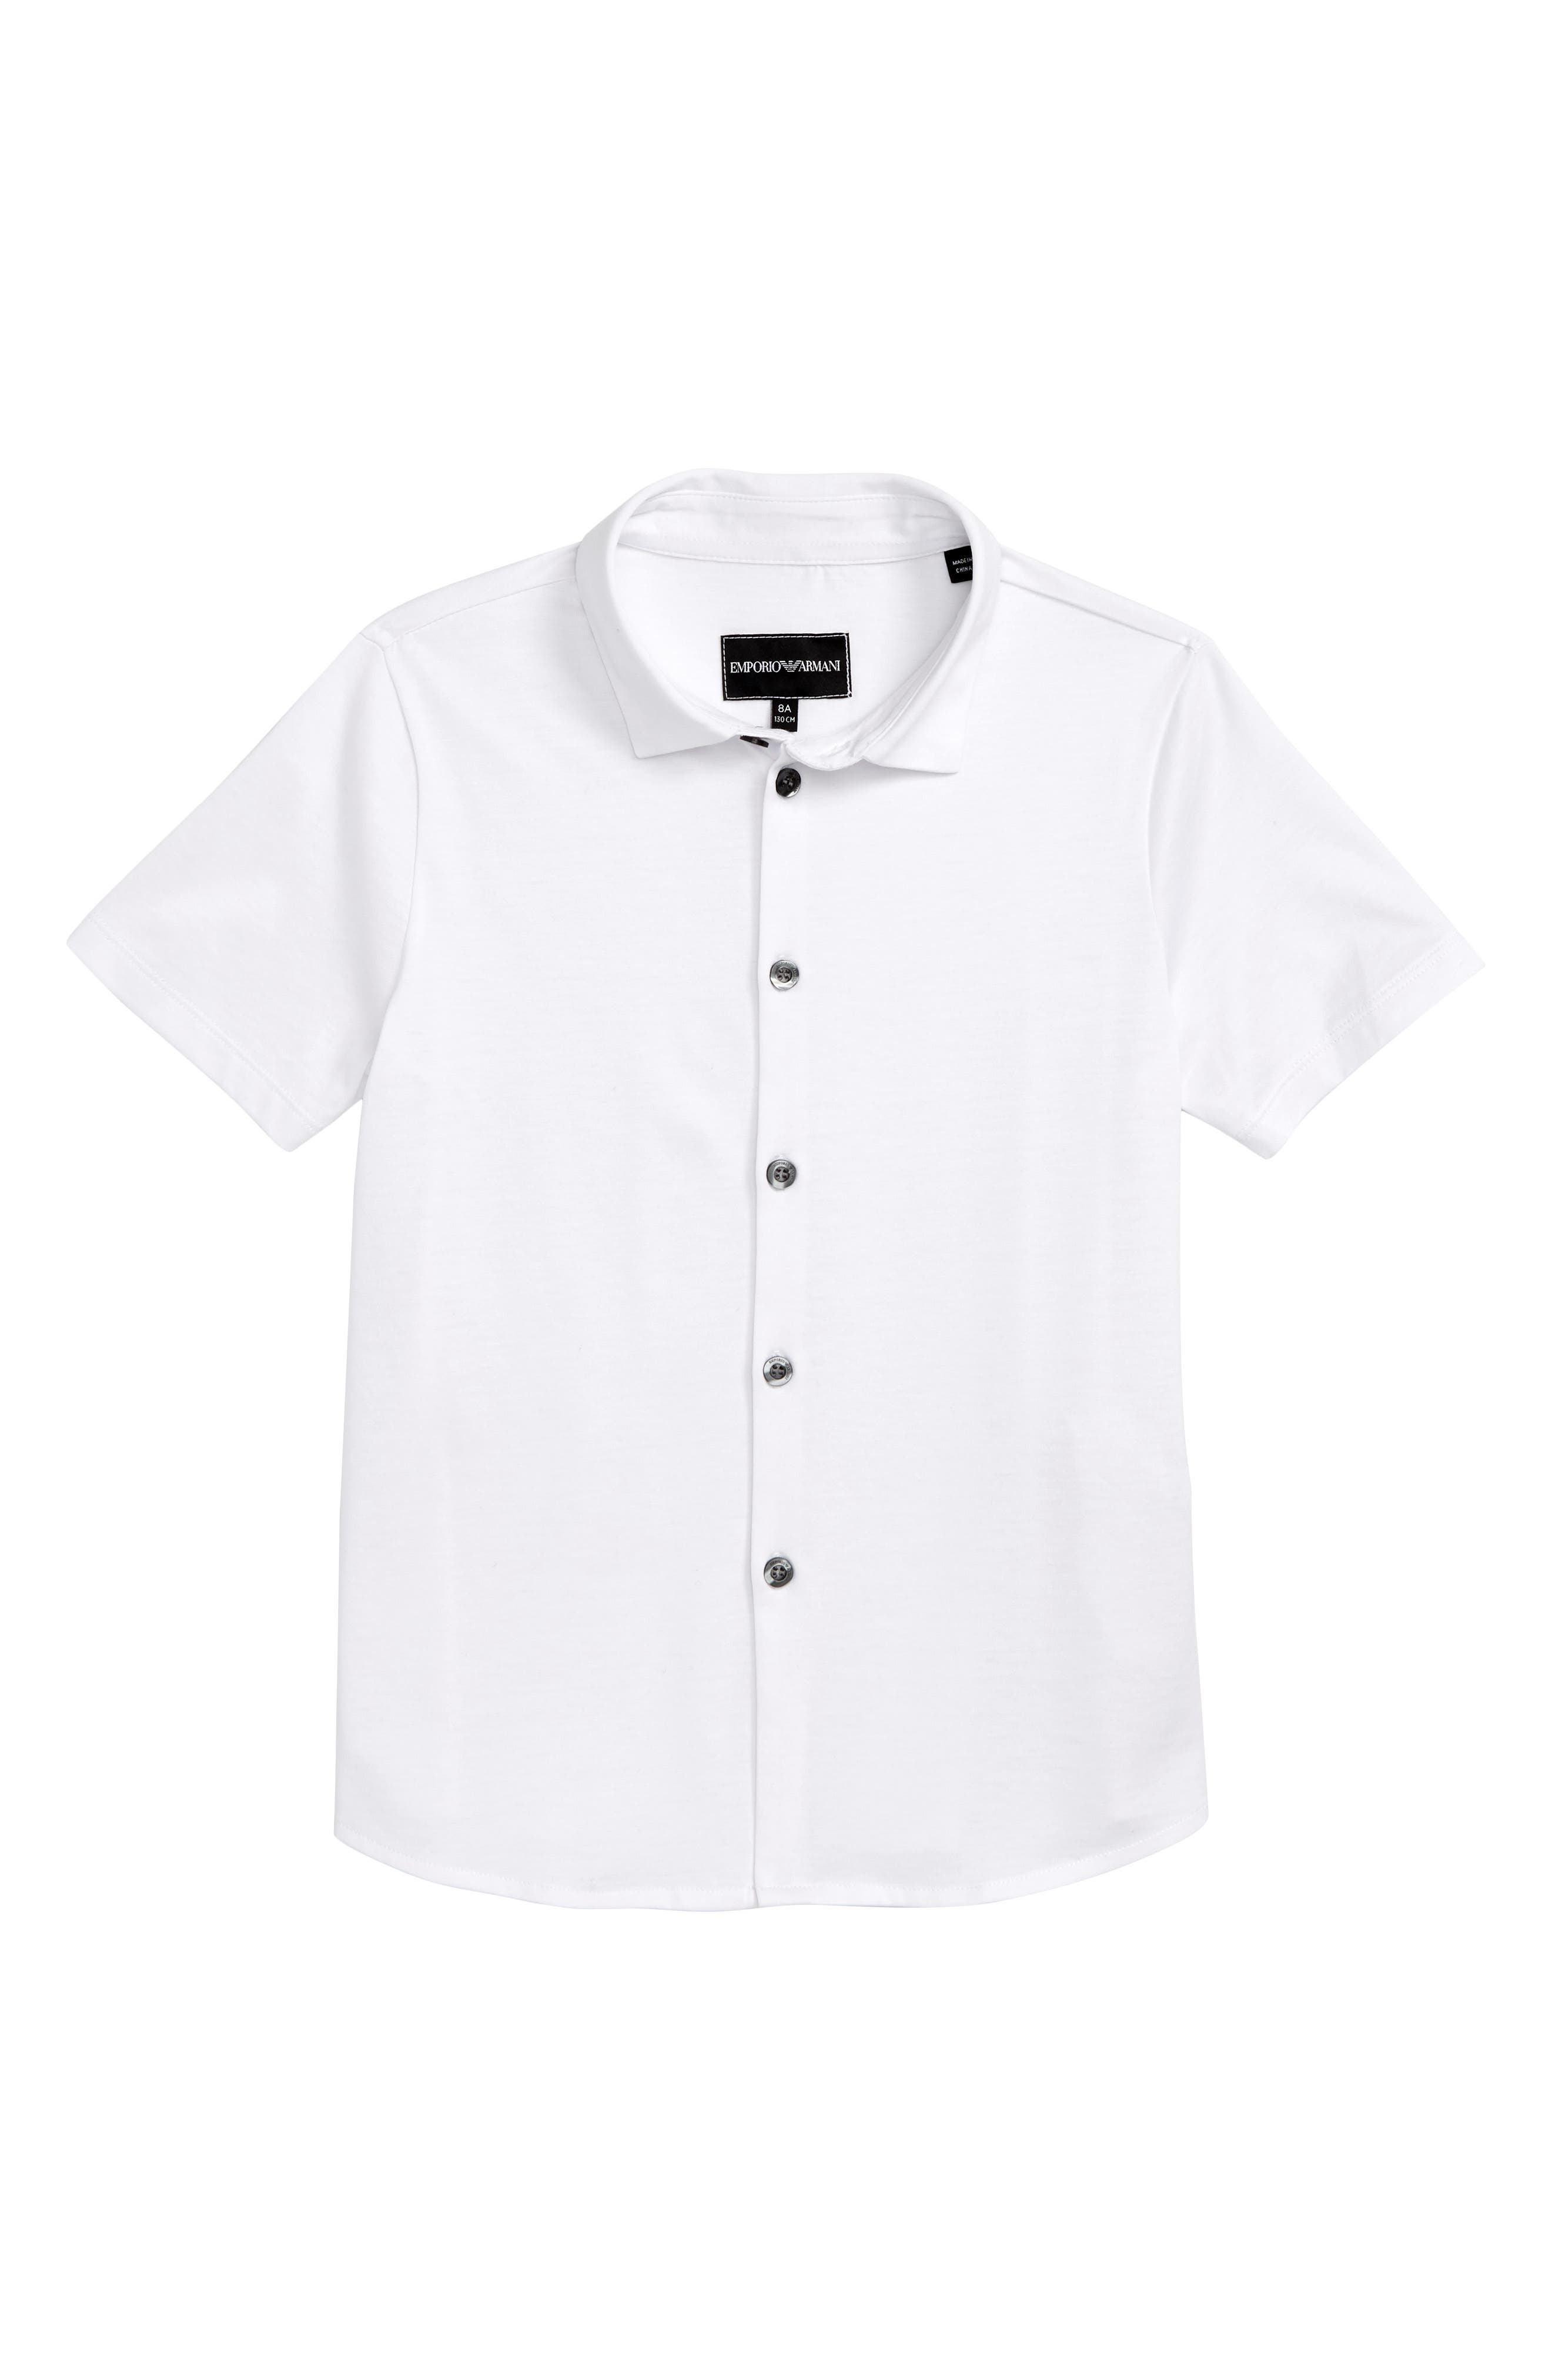 Short Sleeve Cotton Shirt,                             Main thumbnail 1, color,                             SOLID WHITE